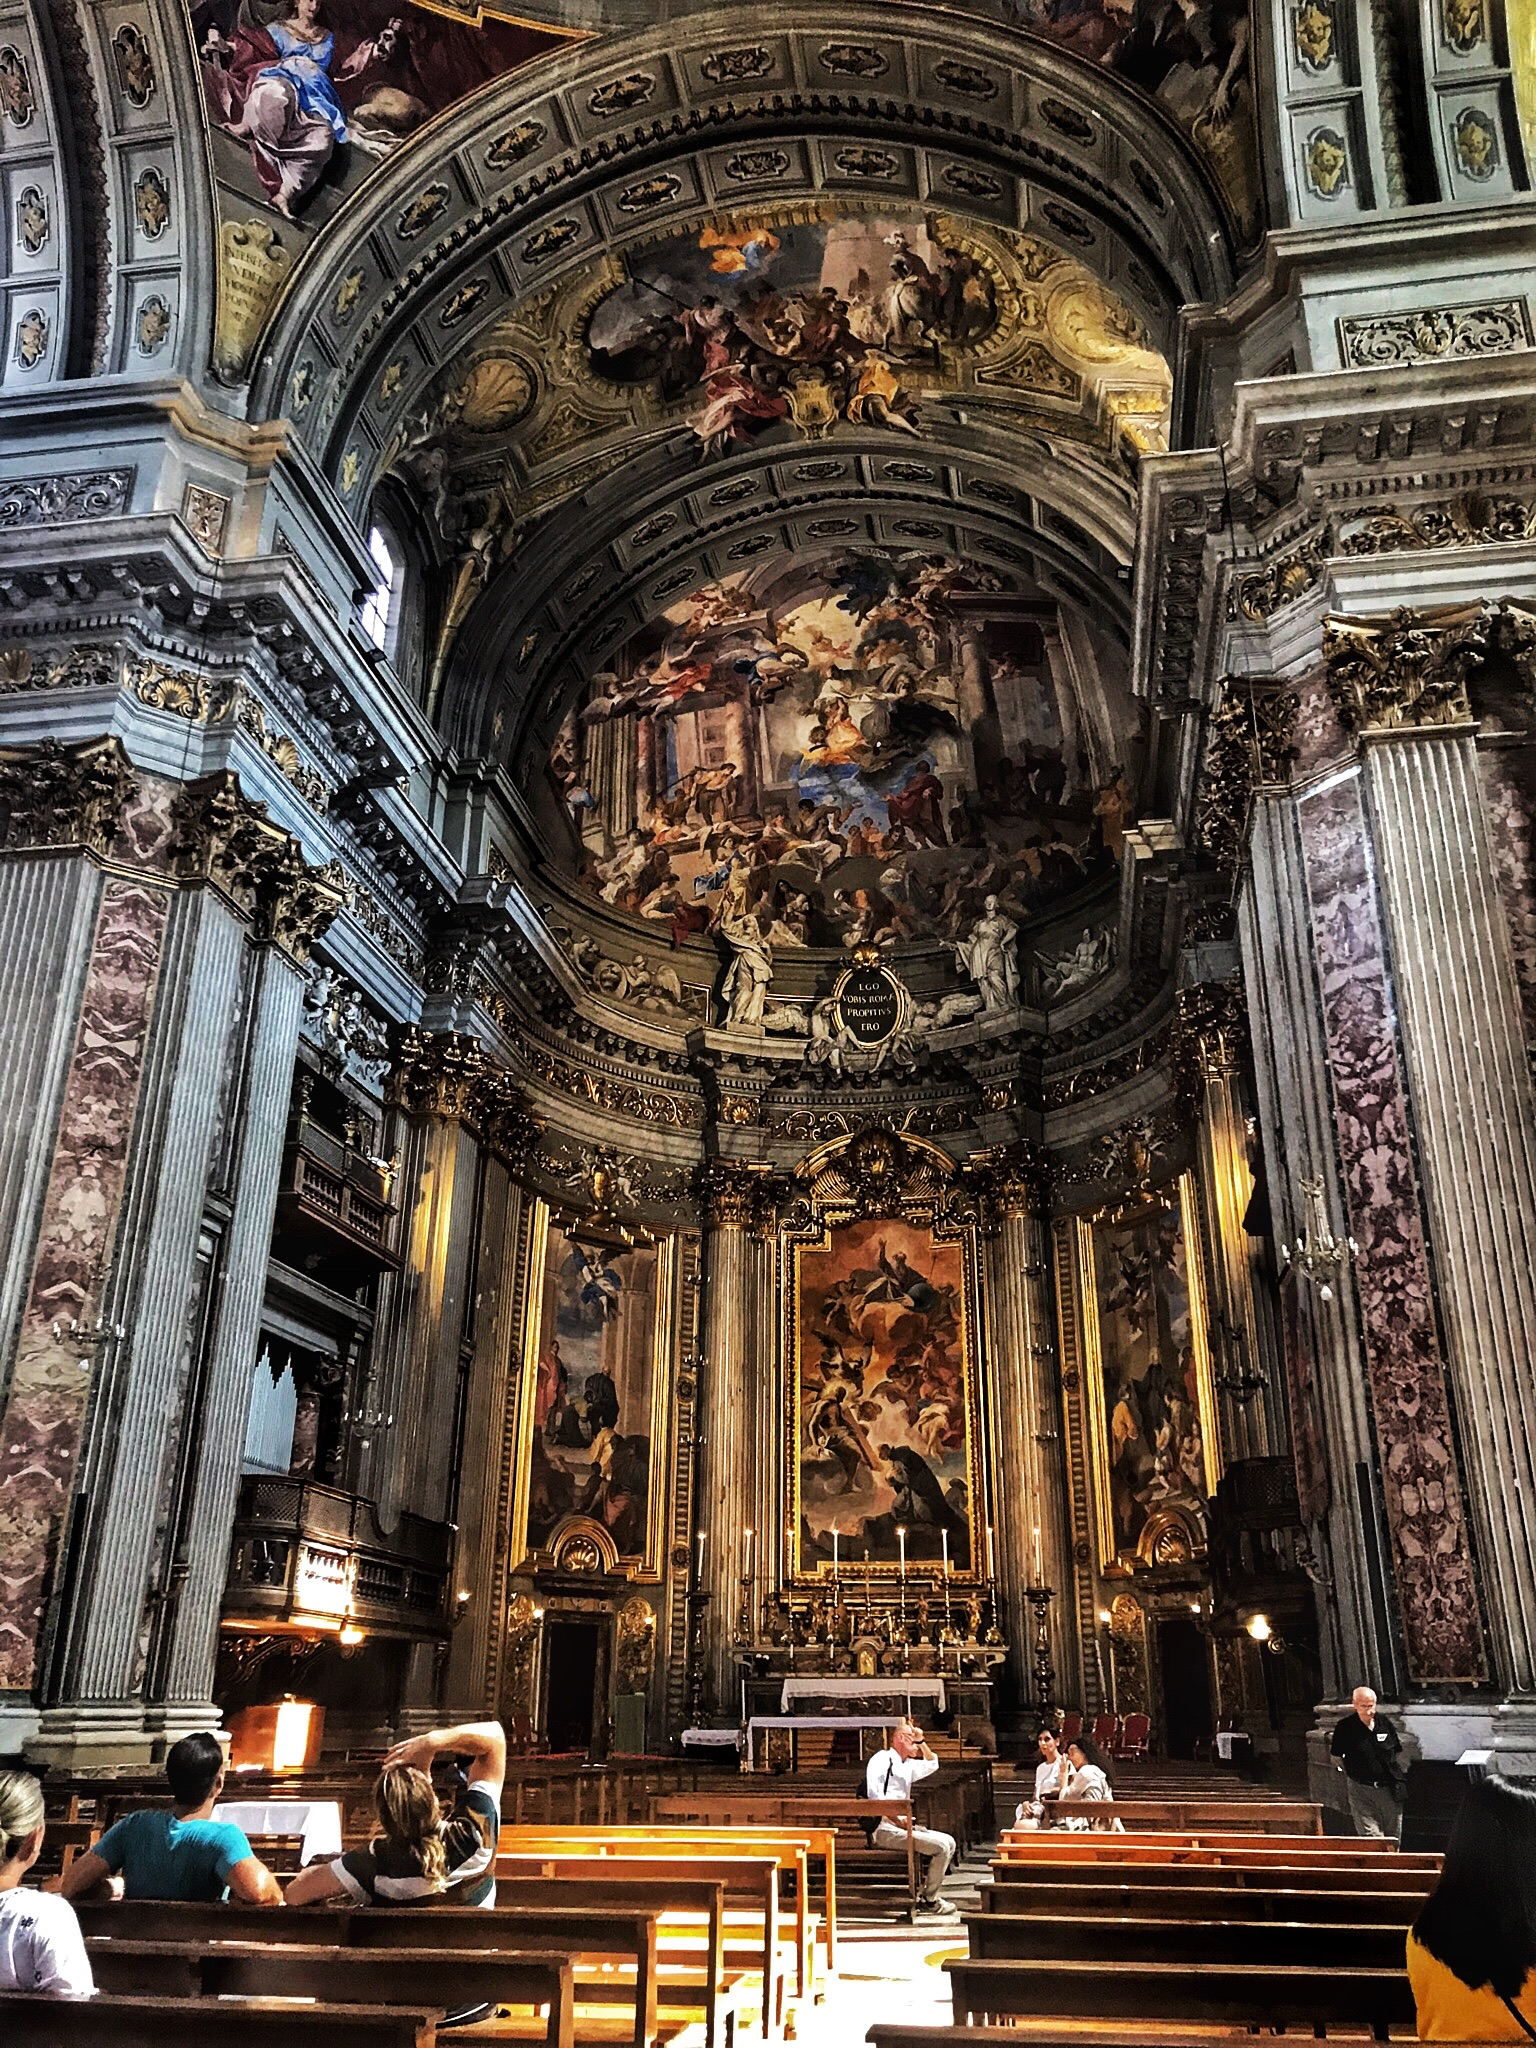 The inside of stone churches in Rome are very cool even on a hot day. Karol and Keane have never before been so religious.